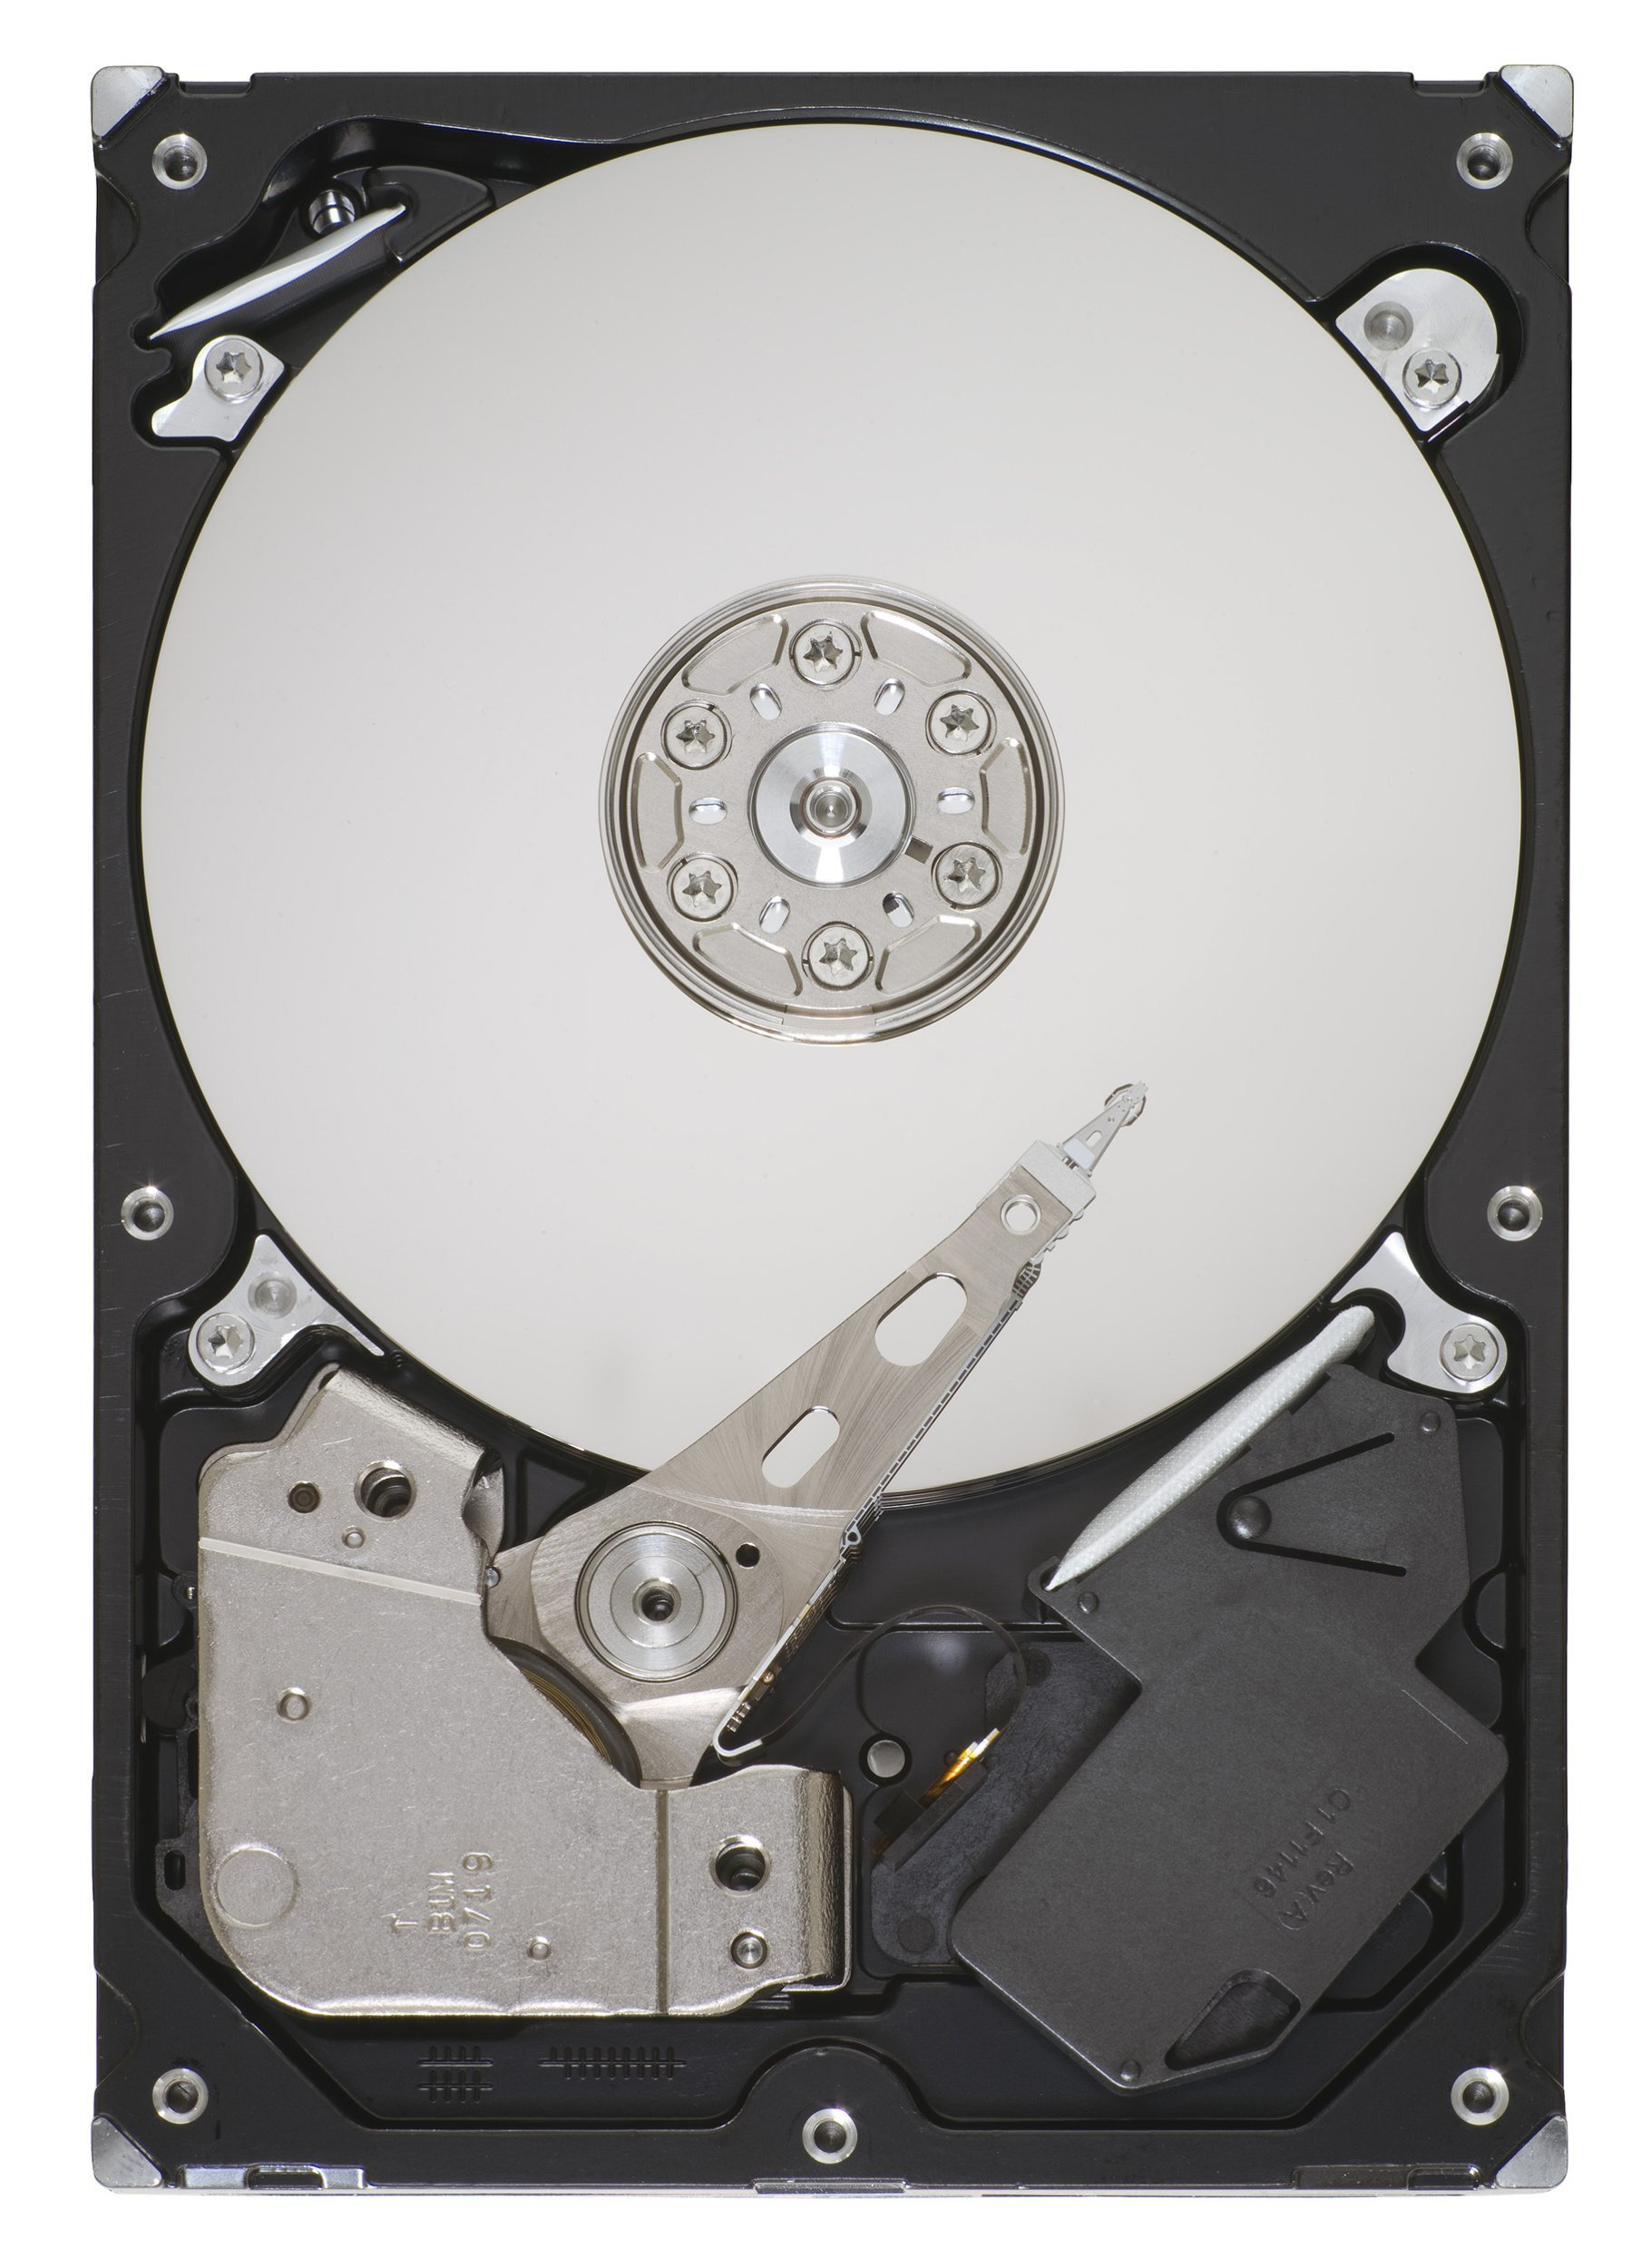 Buy Internal Seagate Barracuda 7200 Hard Drive Now!